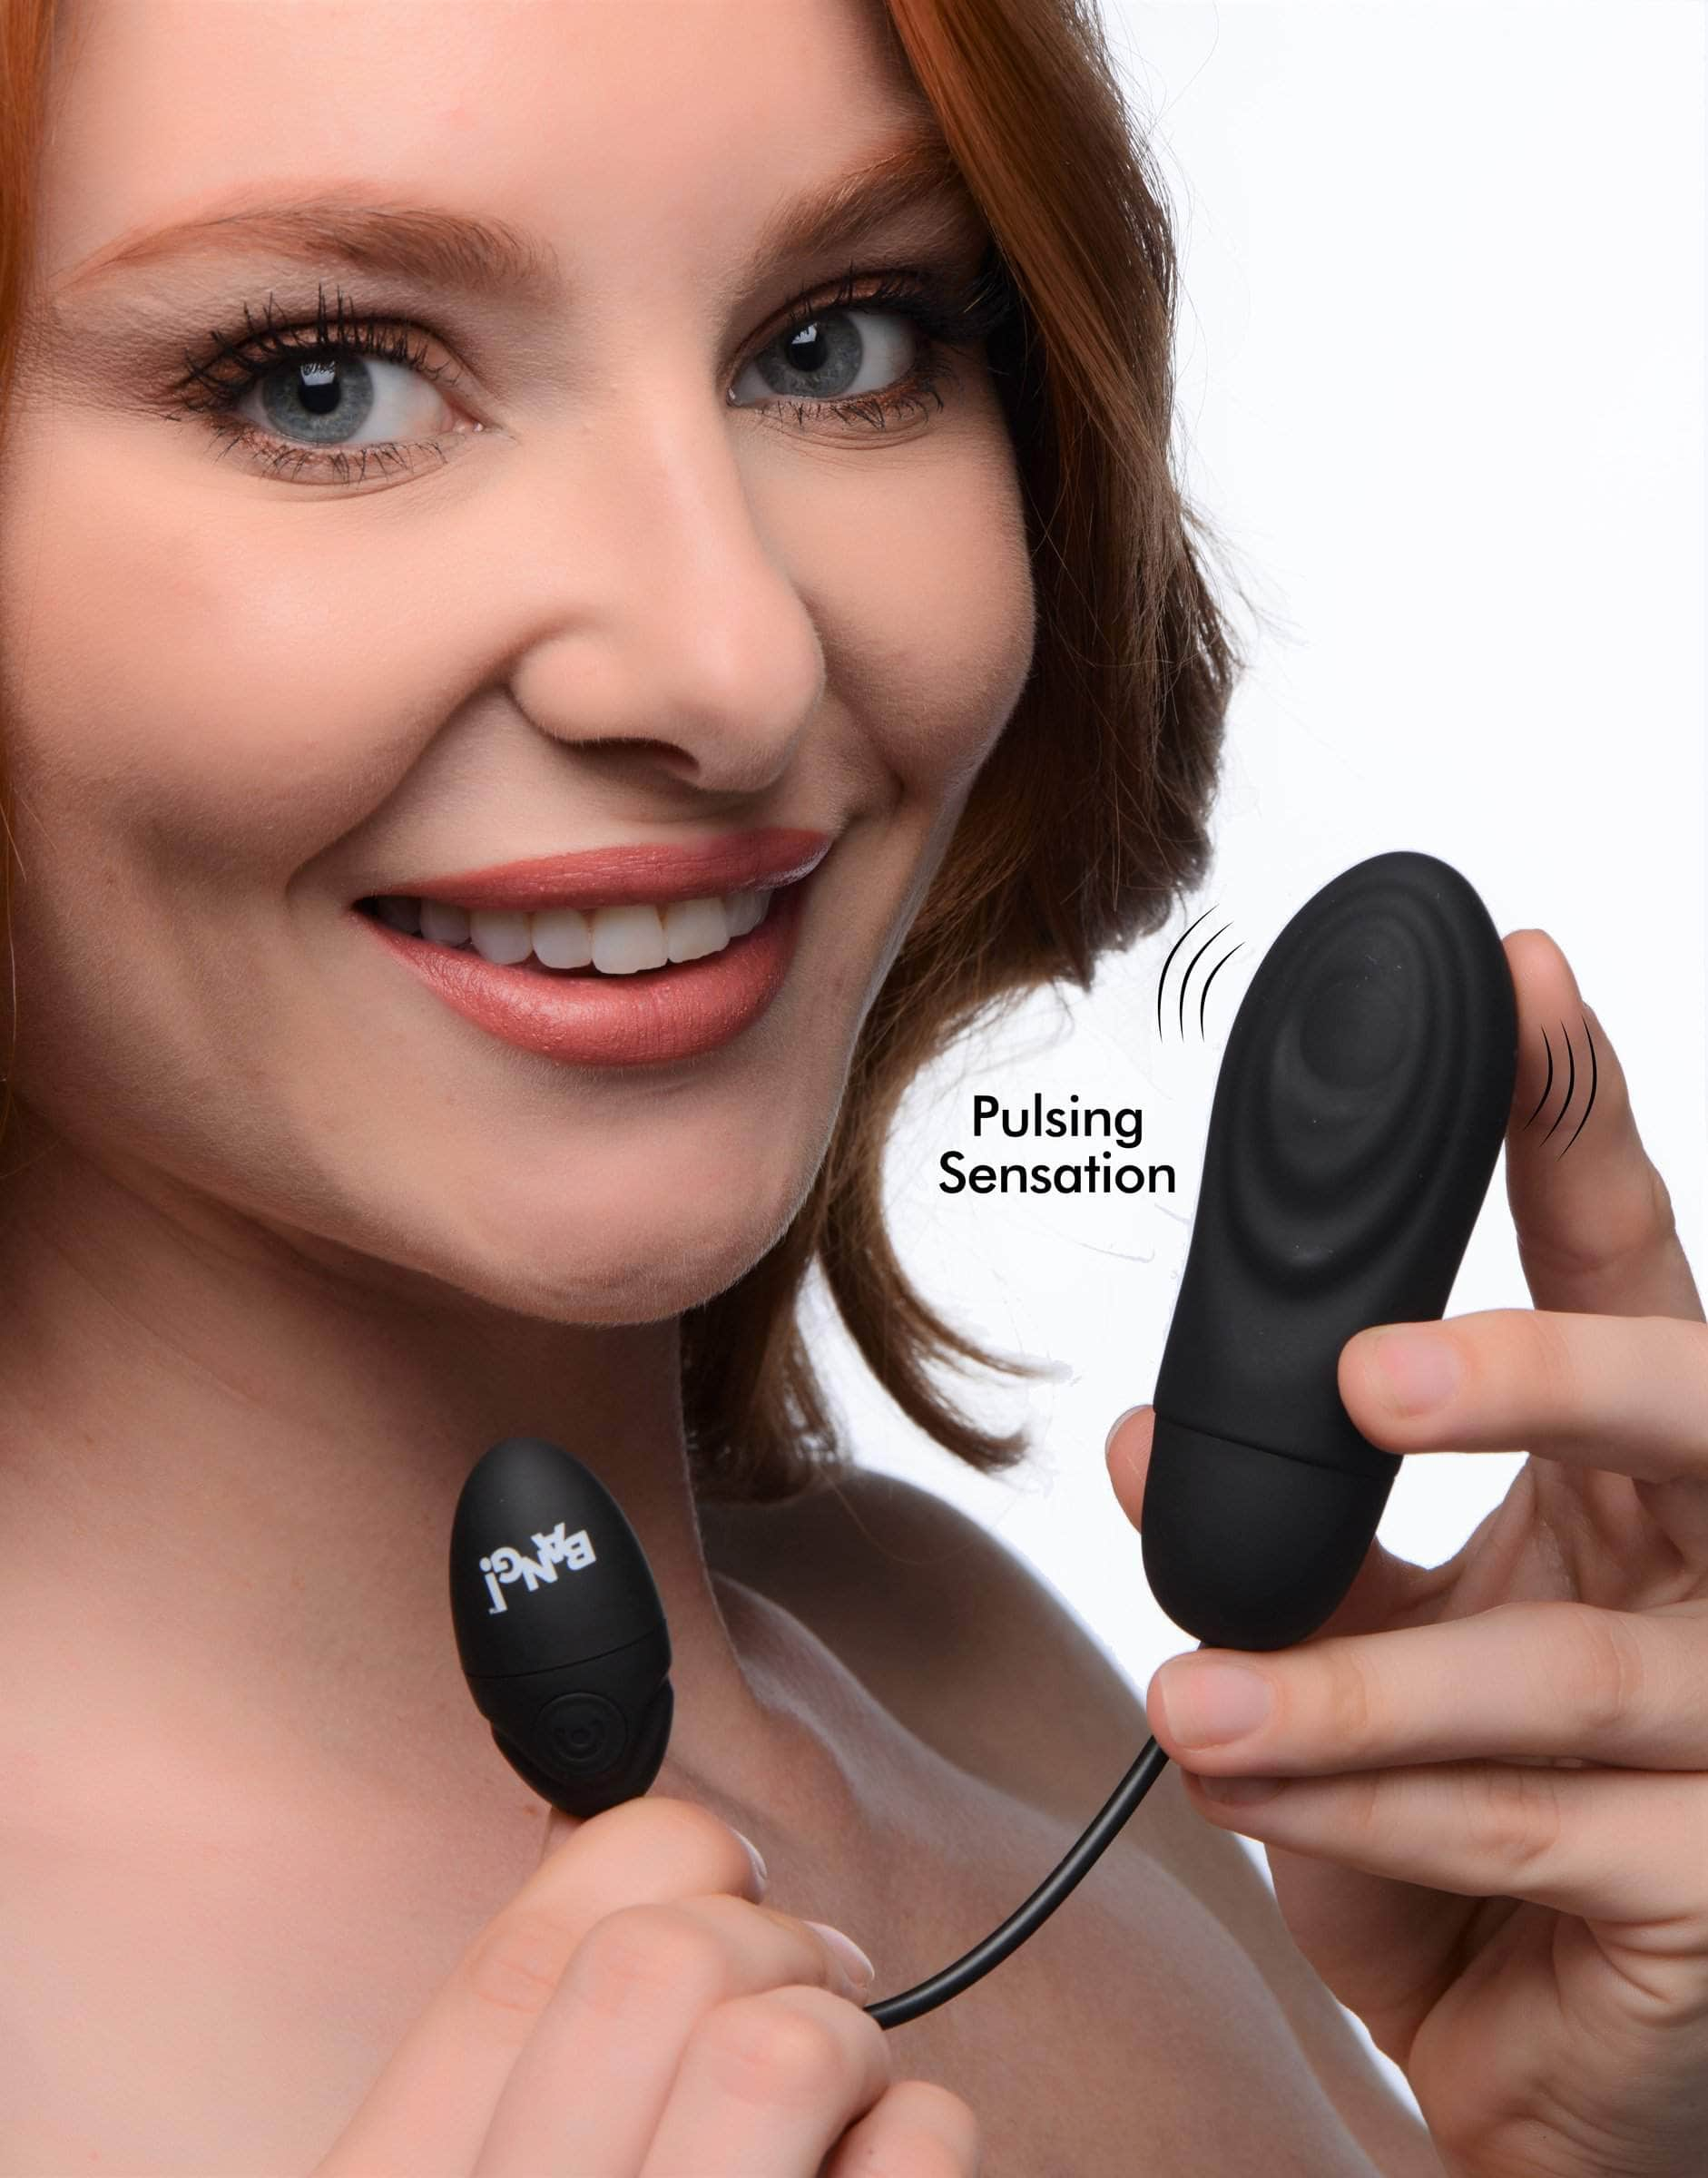 7x Pulsing Rechargeable Silicone Vibrator - Black